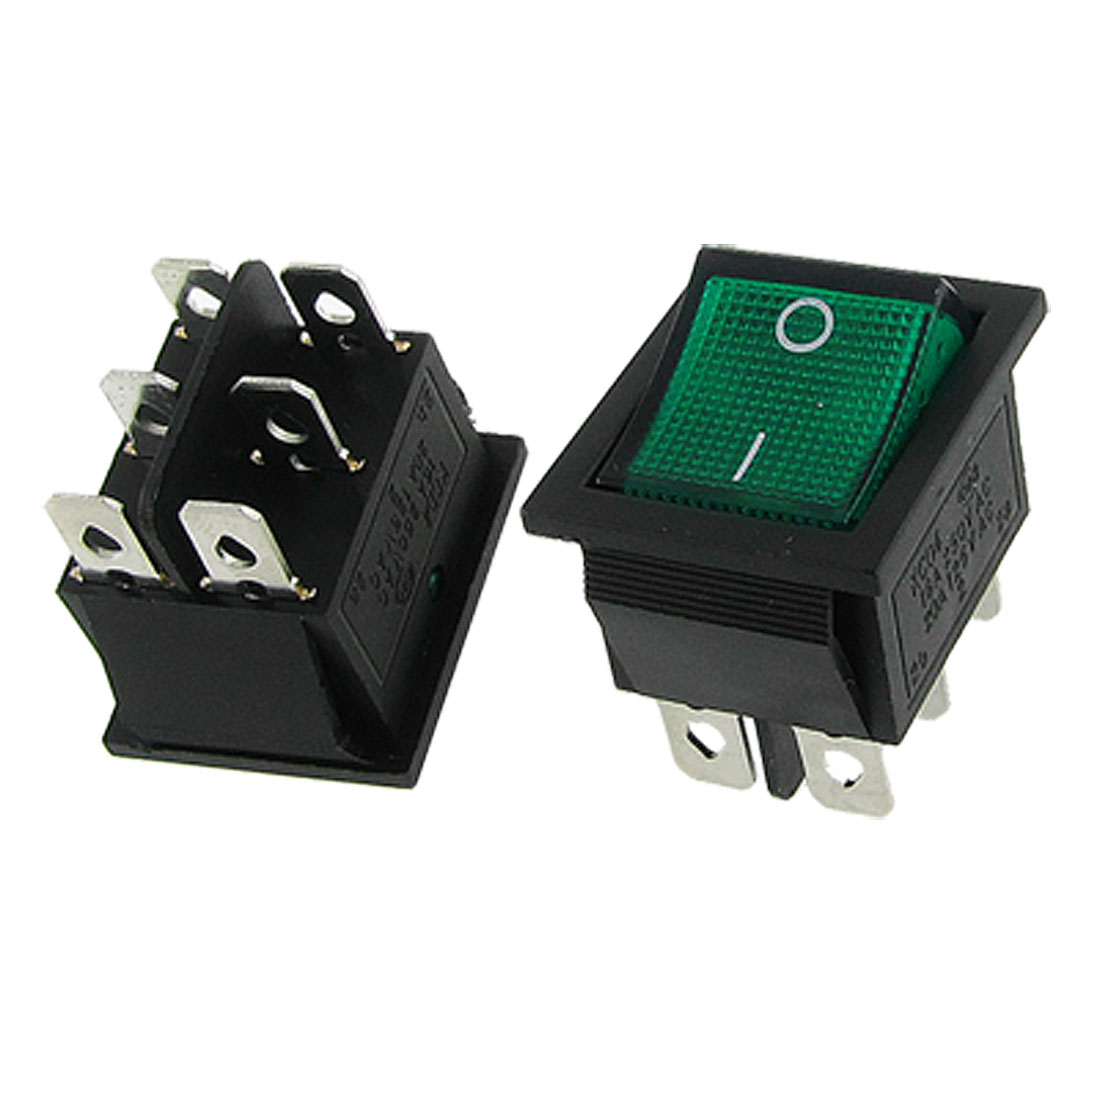 2 Pcs x Green Neon Lamp Light ON-ON I/O 2 Position DPDT Boat Rocker Switch 6 Pin